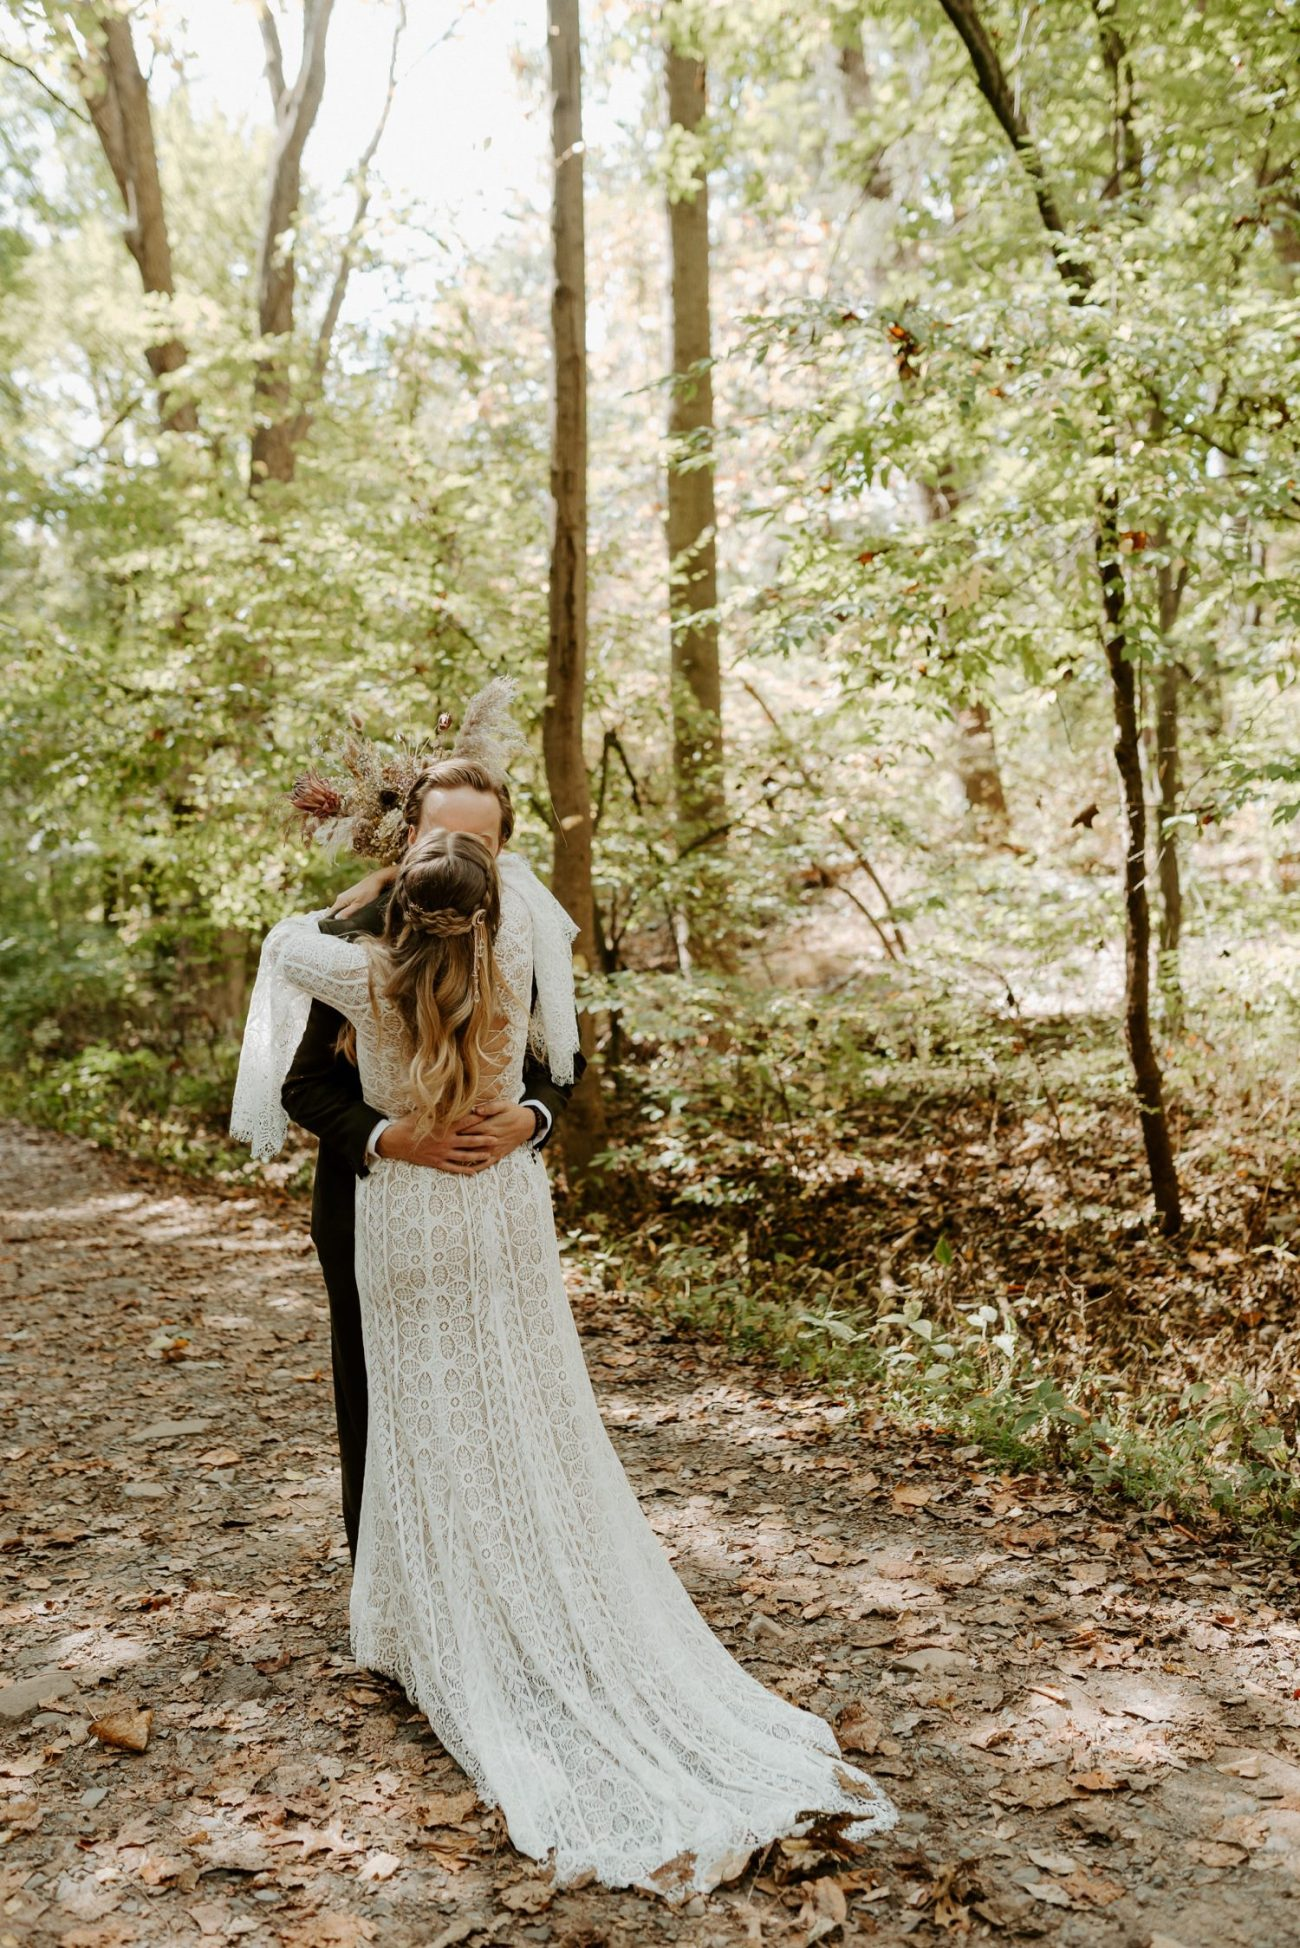 New Jersey Backyard Wedding Vintage Boho Wedding Hemlock Falls NJ Bend Oregon Wedding Phtographer Anais Possamai Photography 003